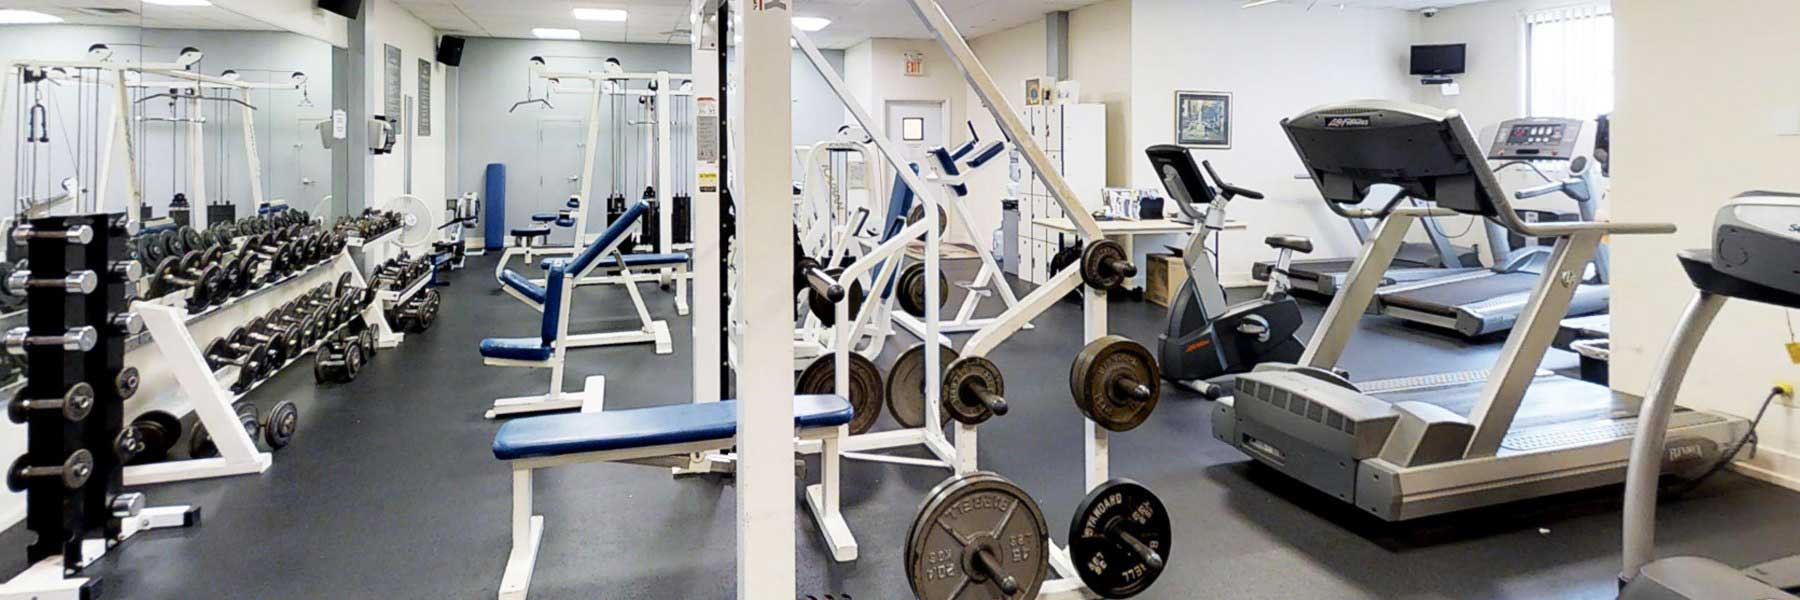 Fox Meadow apartments gym